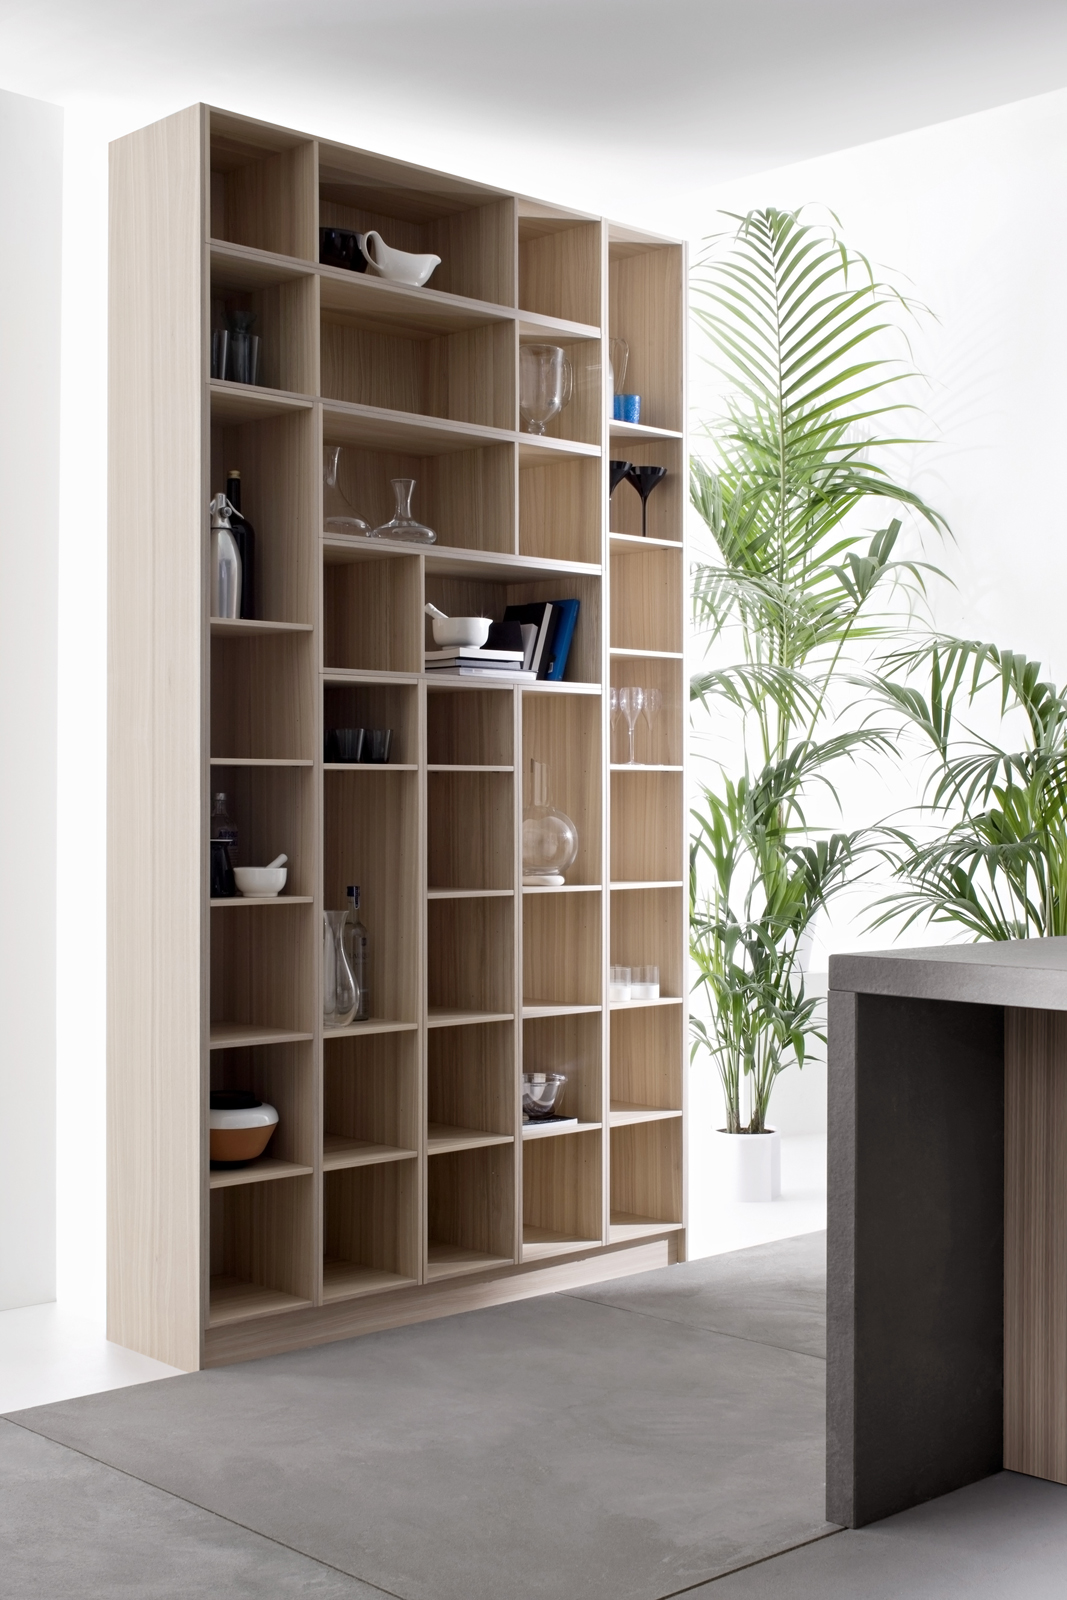 Code Natural kitchen by Snaidero Design open shelving